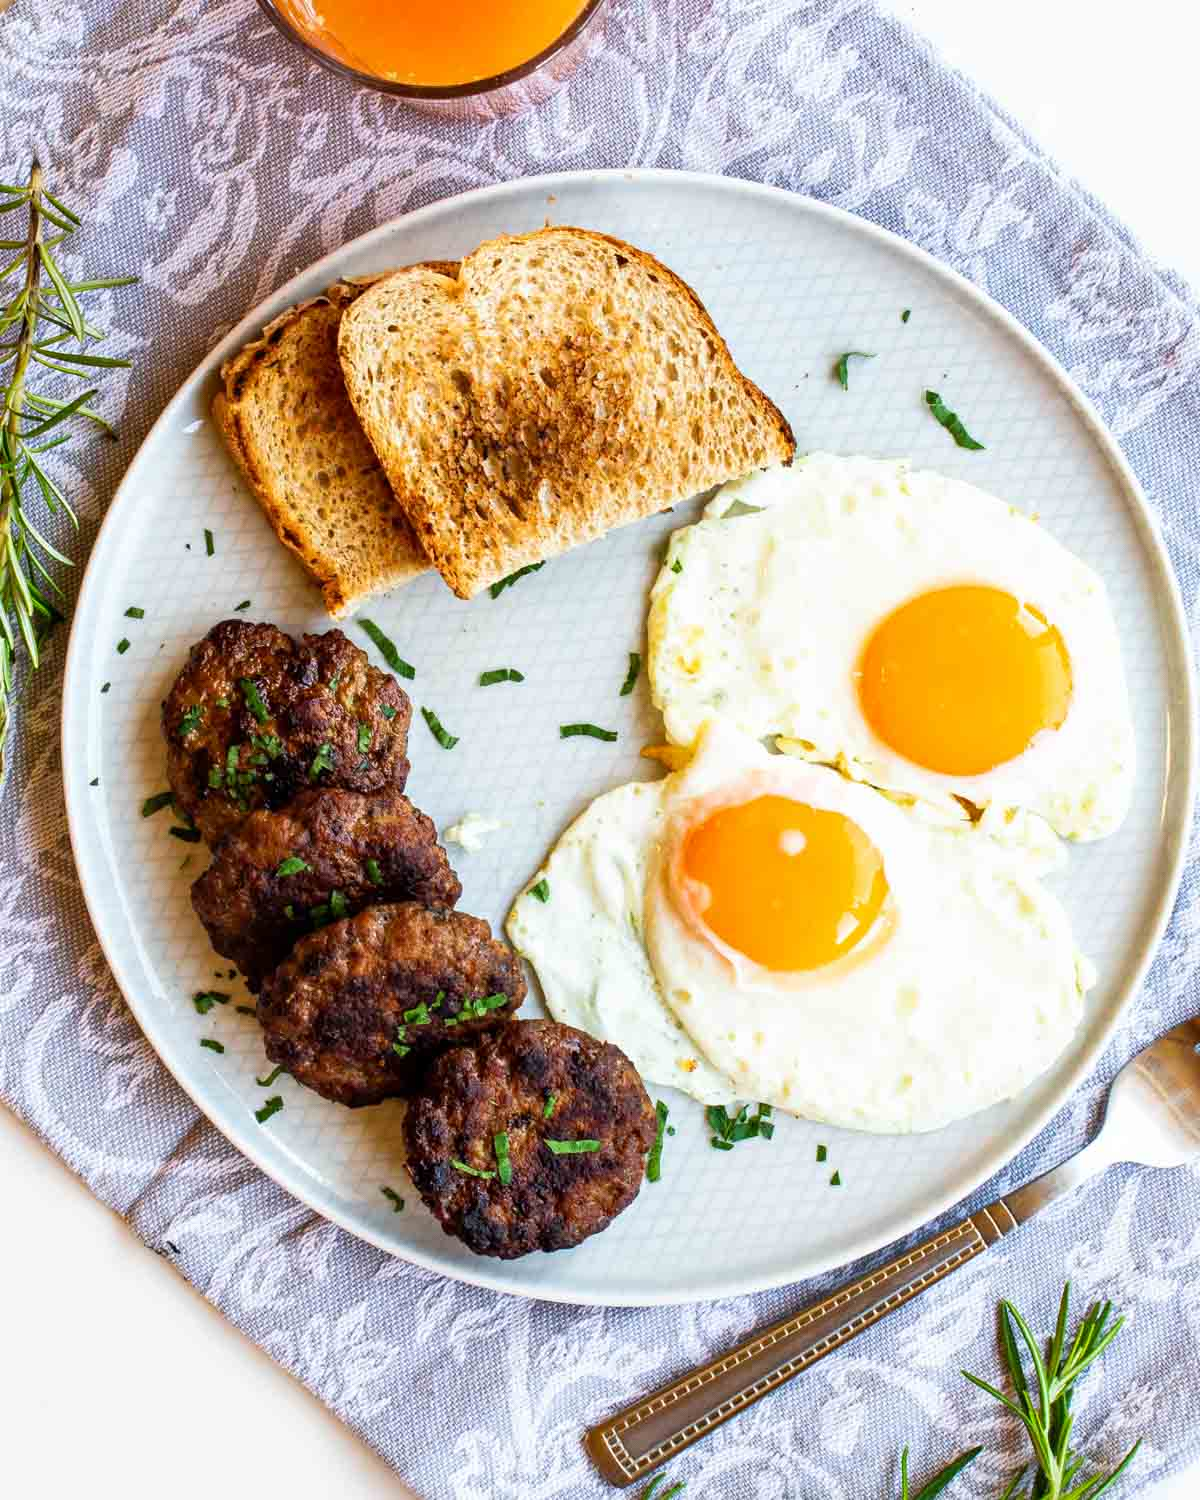 2 sunny side up eggs with 4 breakfast sausages and 2 slices of toast on a white plate.